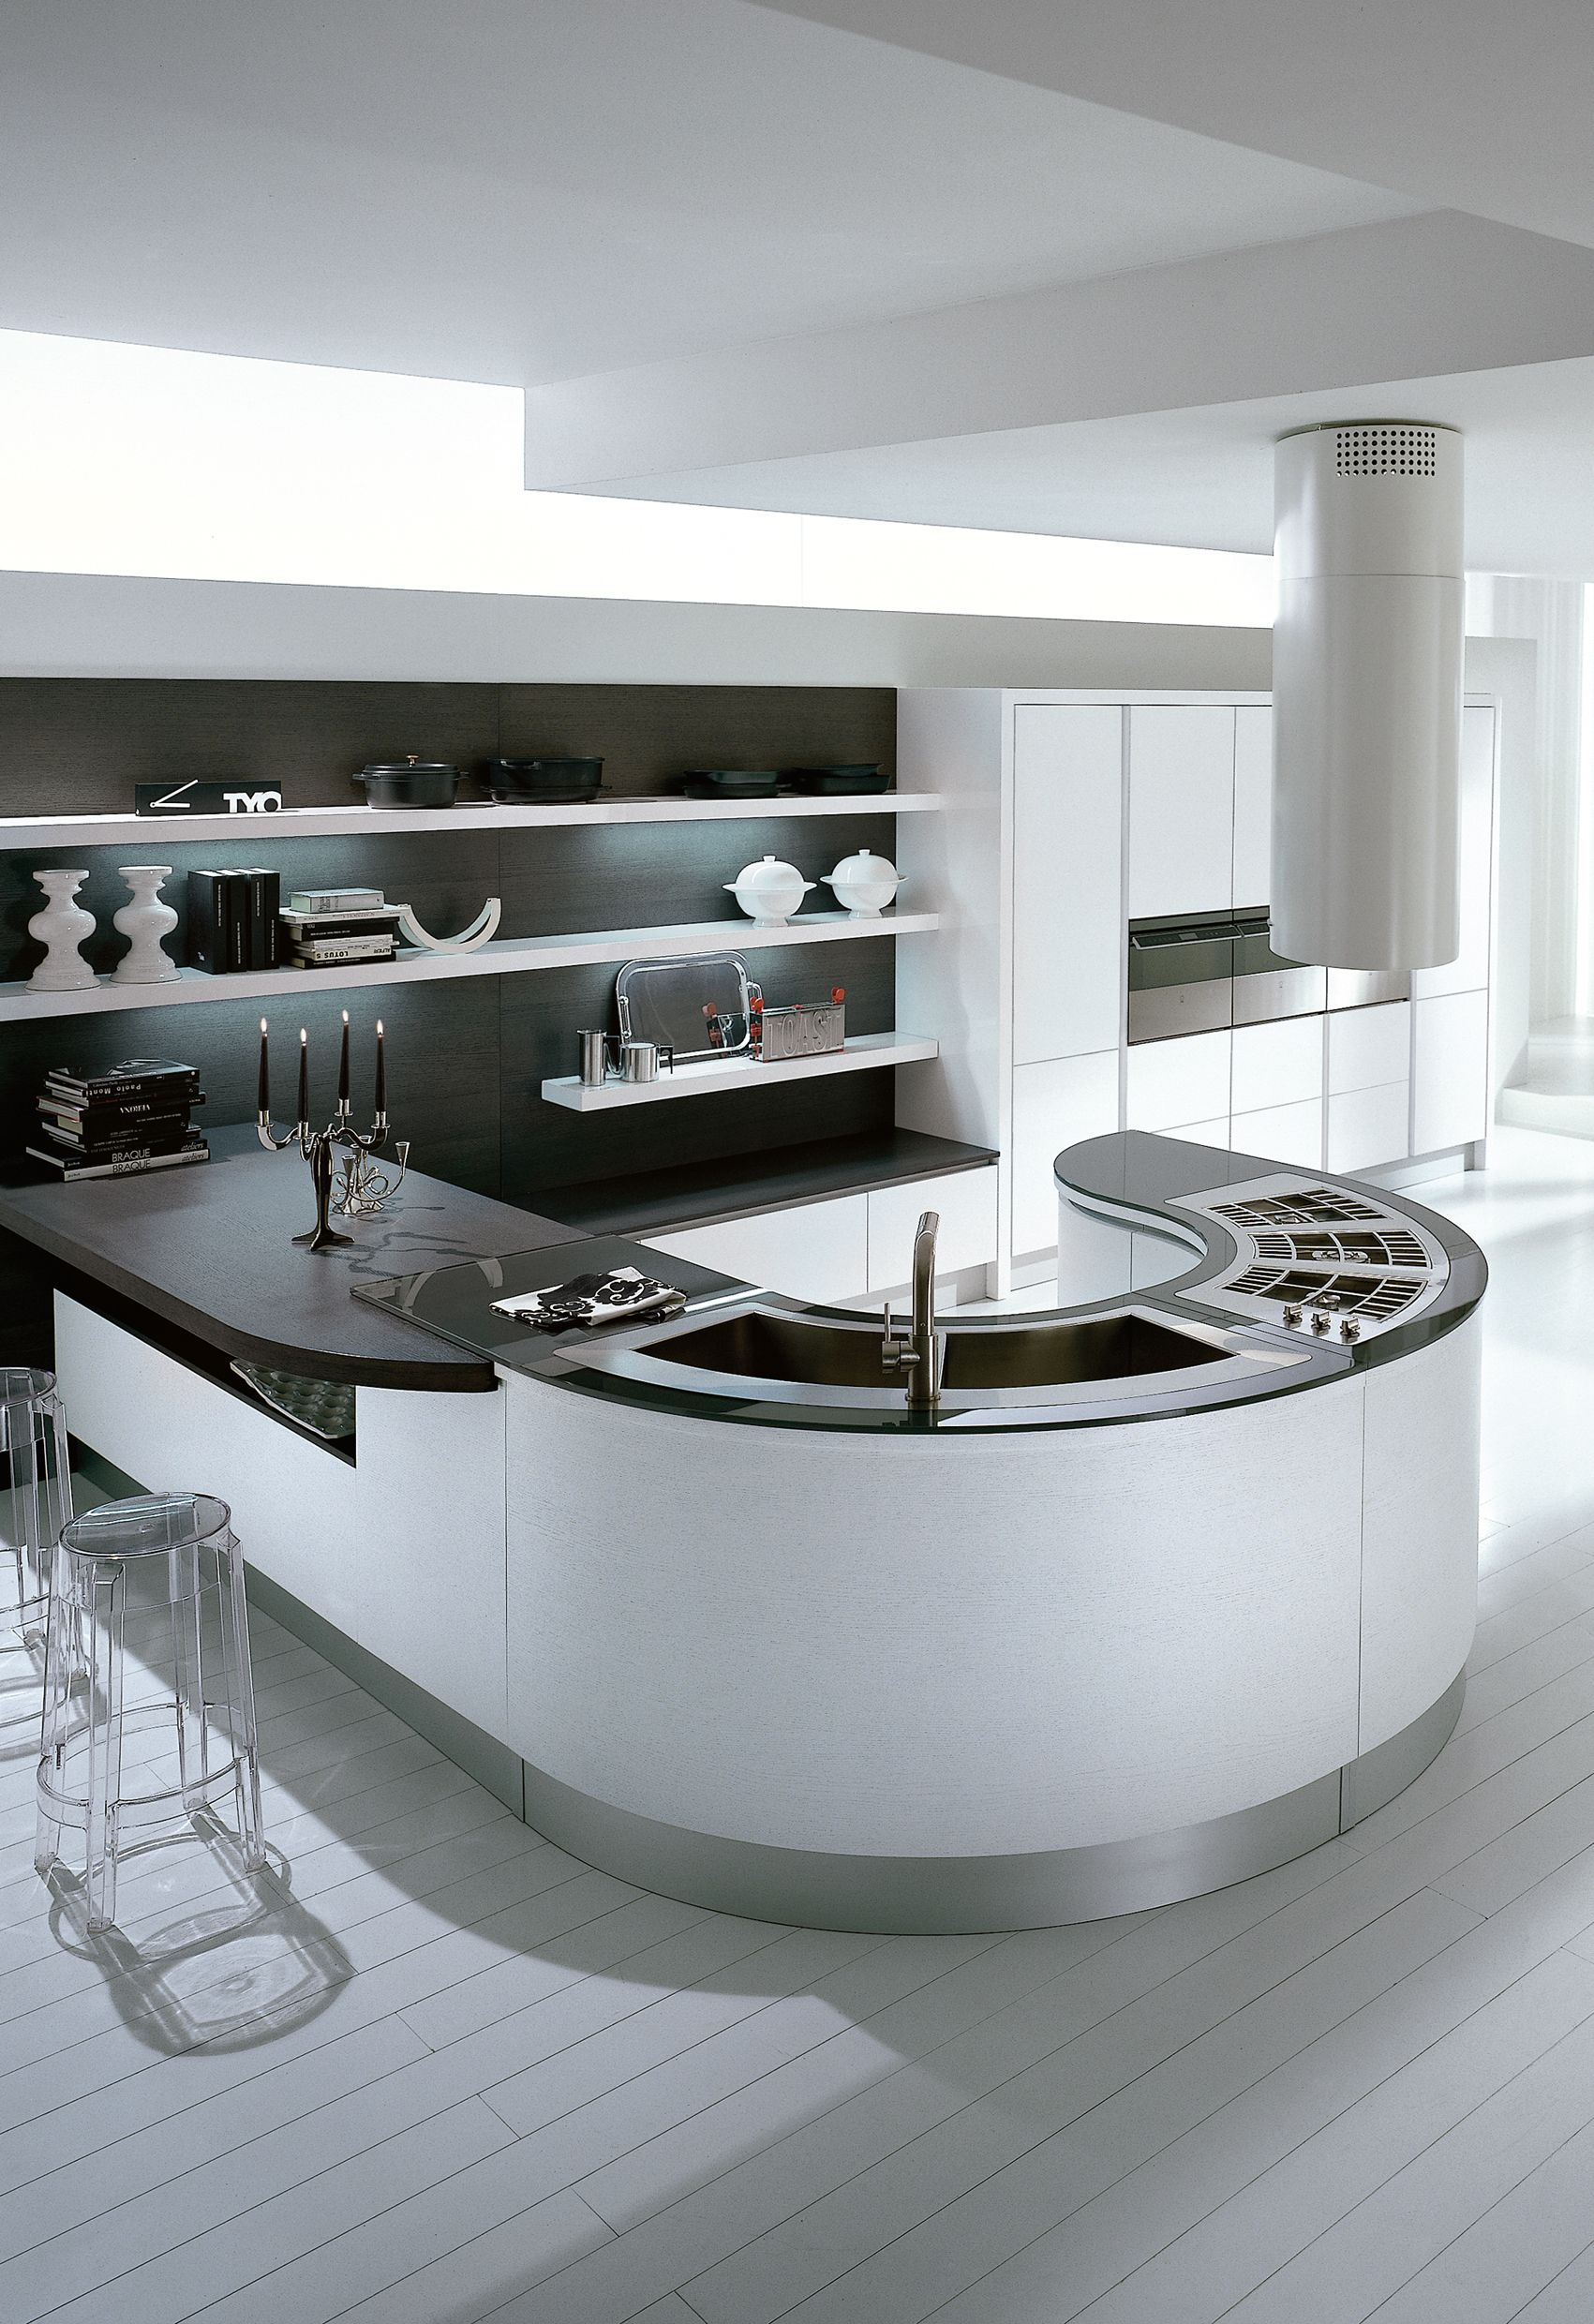 Integra kitchen design nyc things to wear pinterest